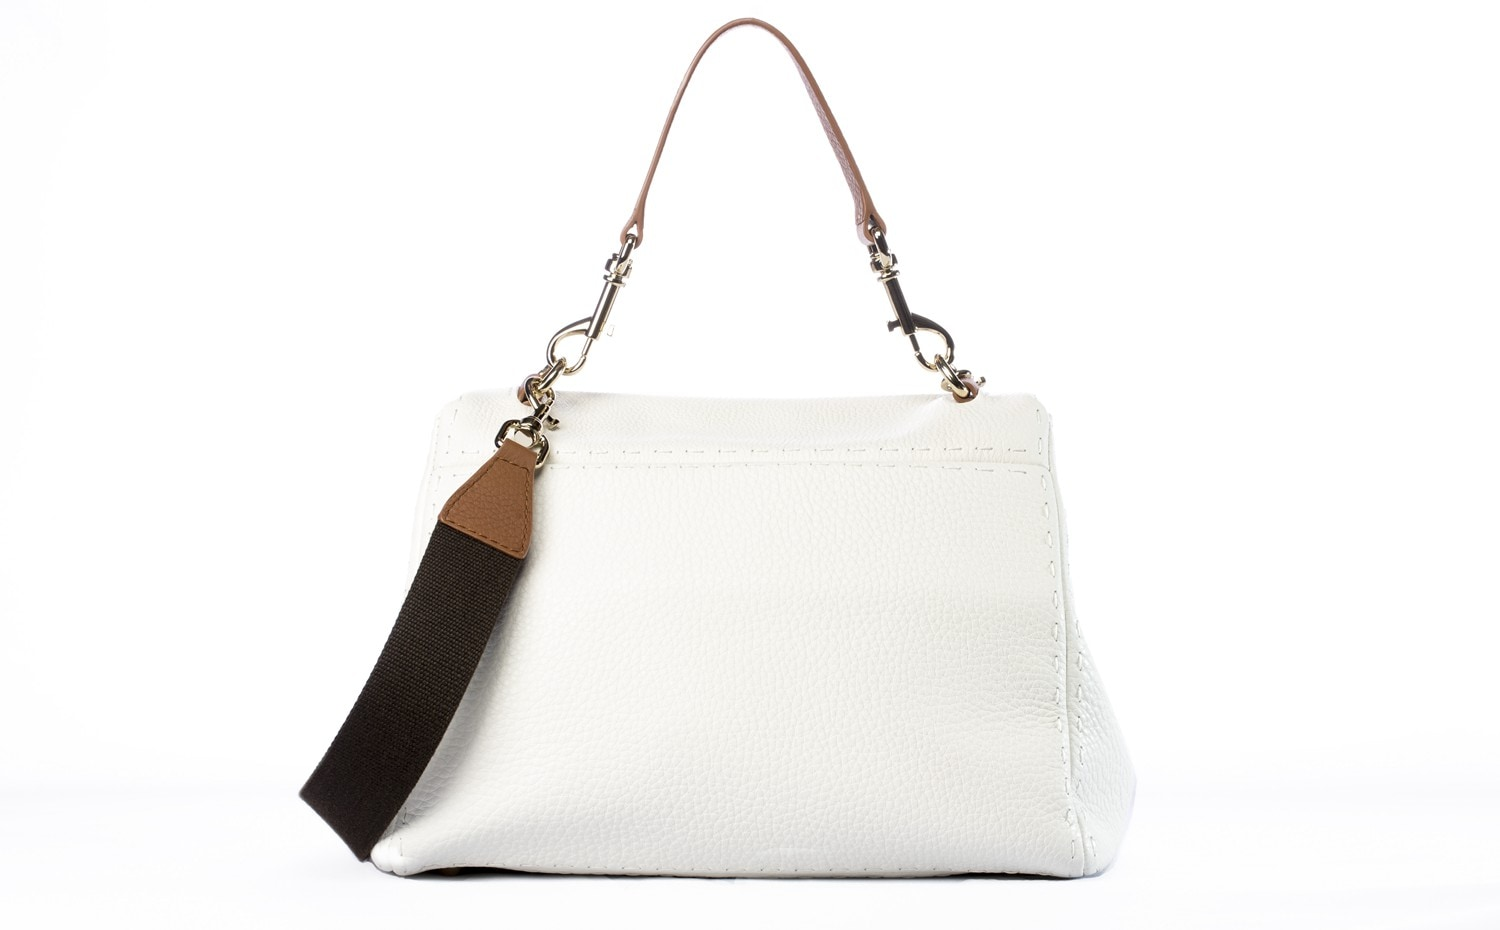 CH Carolina Herrera: Baret Bag in White